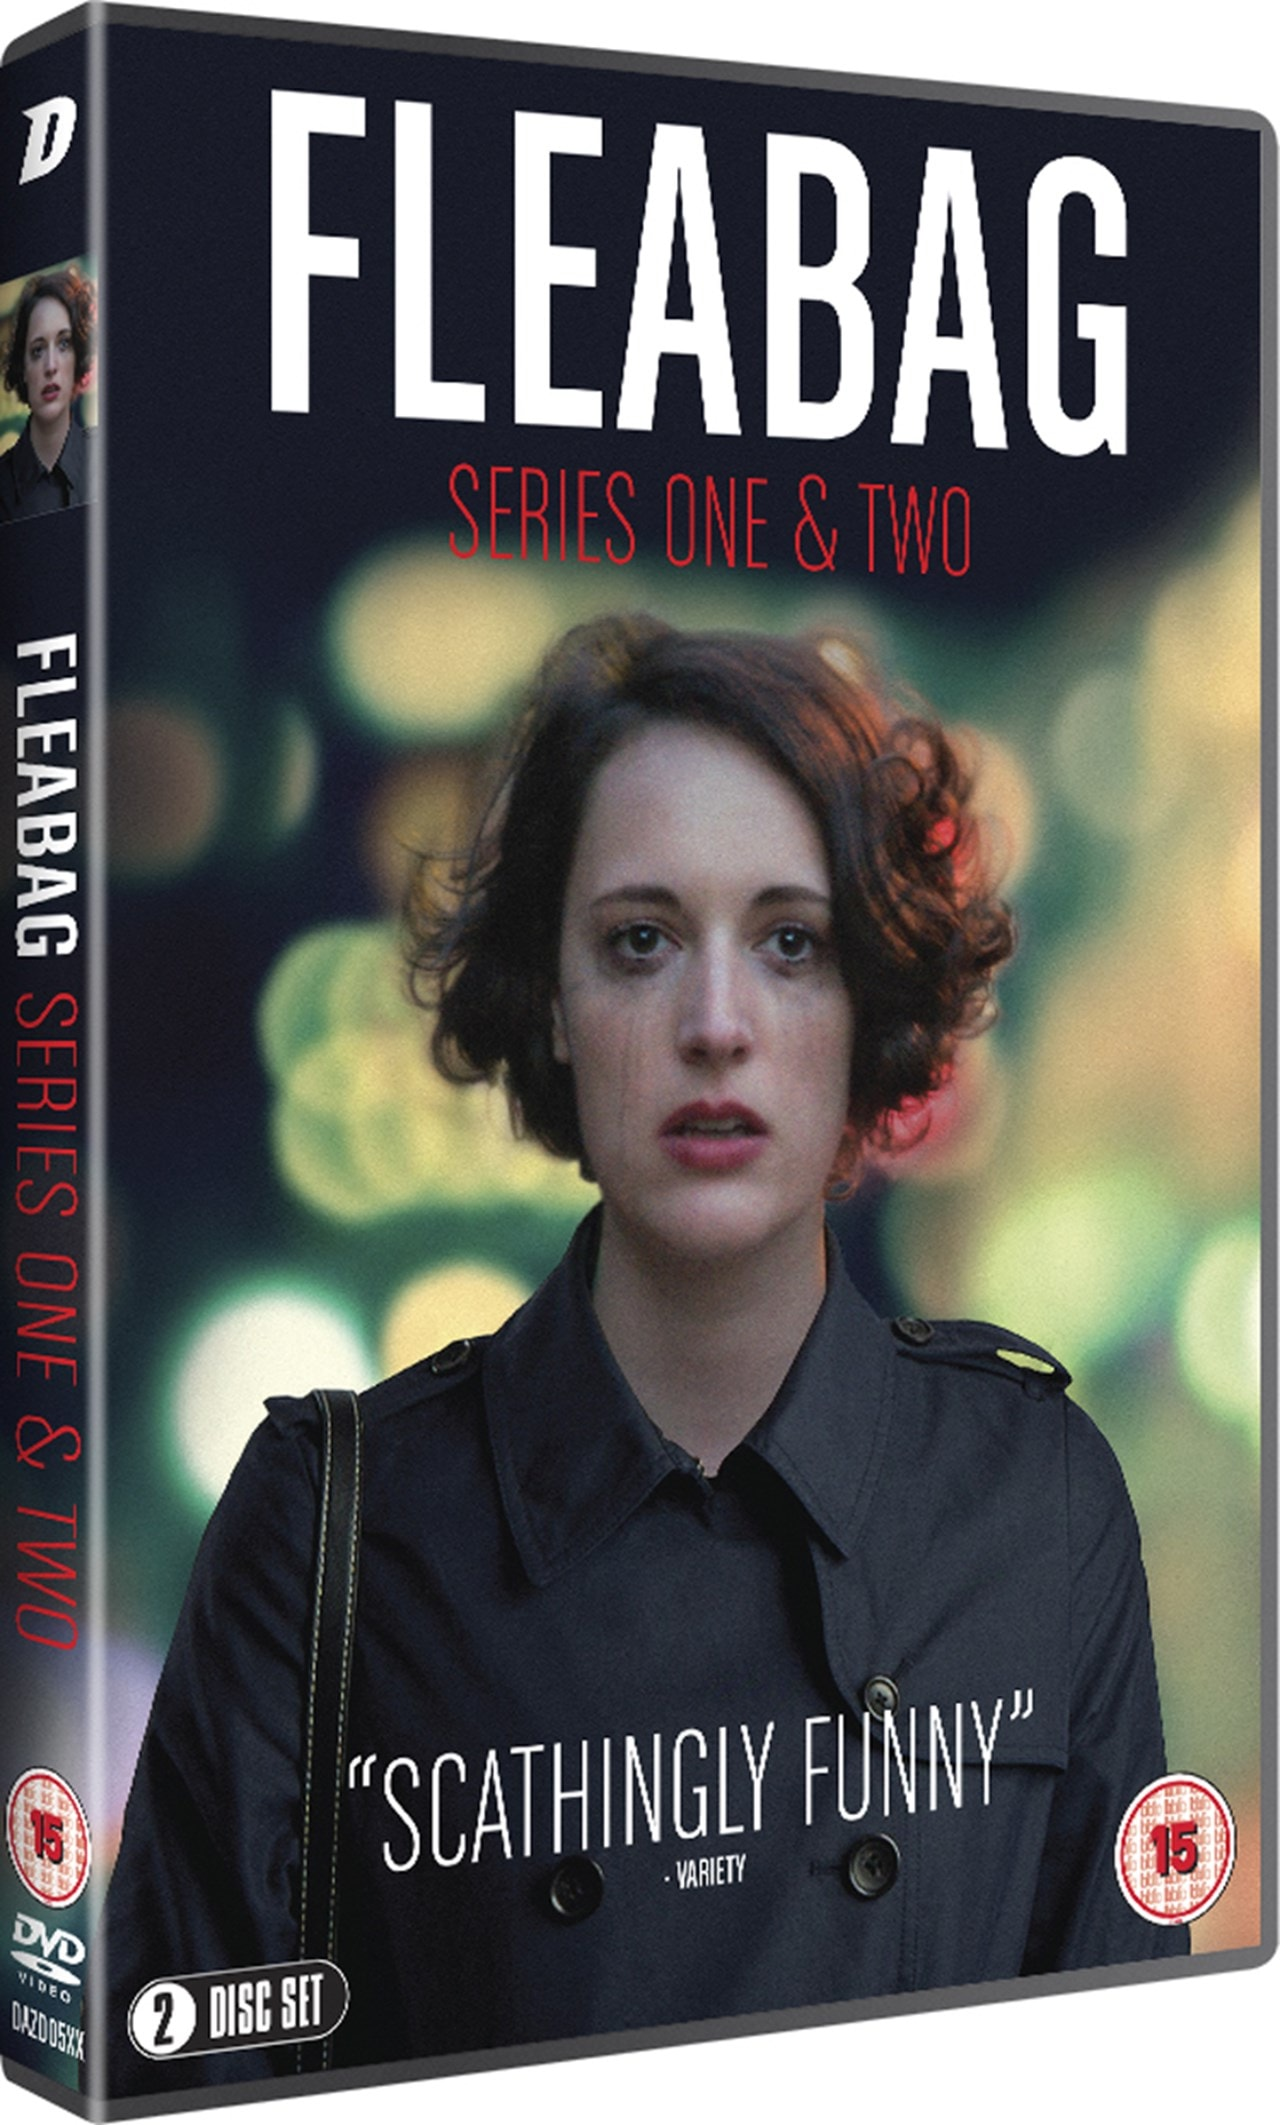 Fleabag: Series One & Two - 2